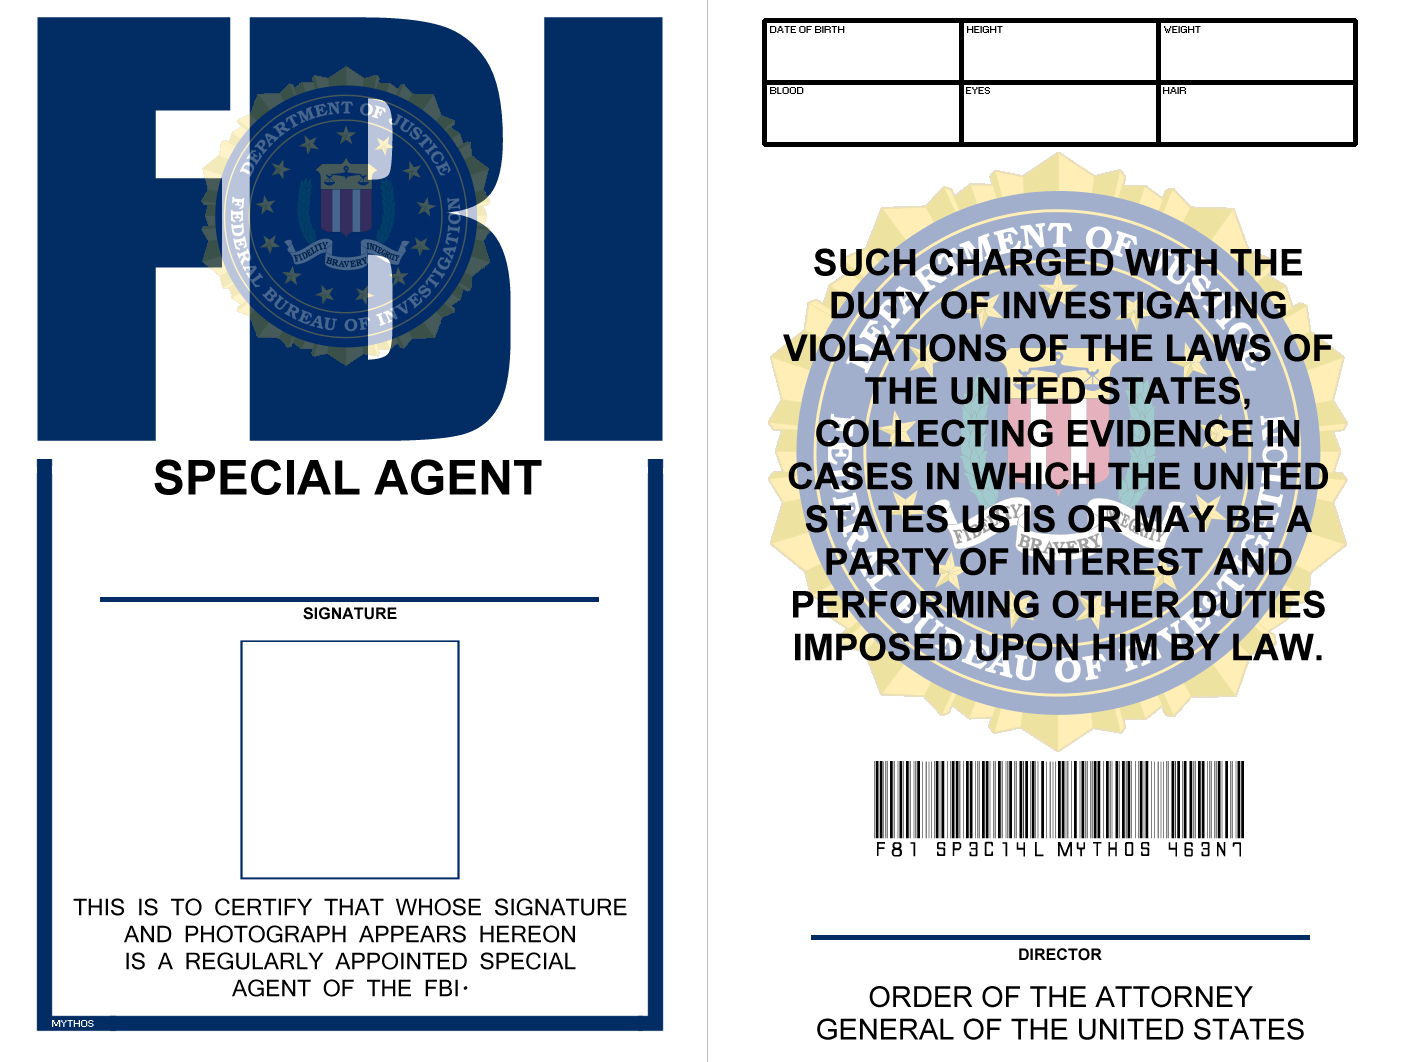 Fbi Badge (X Files) | Special Agent, Templates Printable Inside Spy Id Card Template